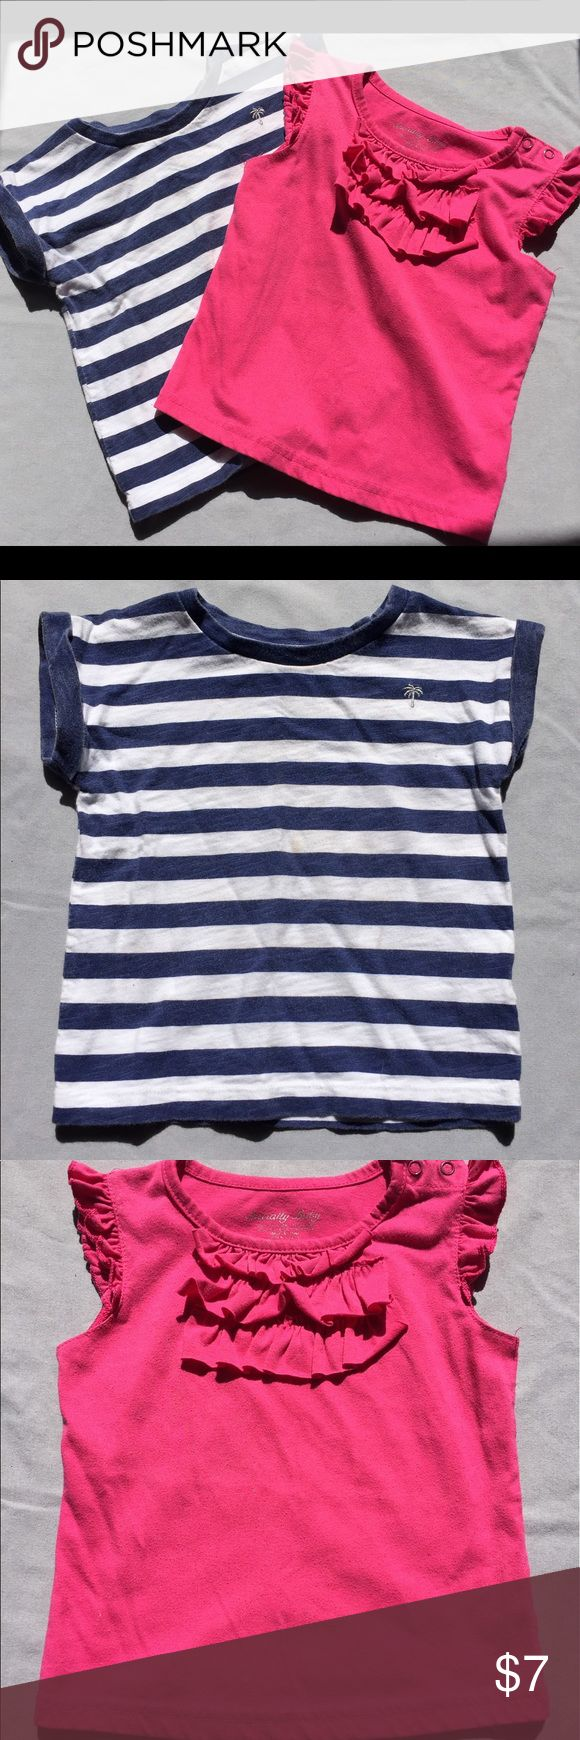 Lot of 2 girls tops size 2T 2 girls tops size 2. One shorts sleeve navy and white striped top Carter's. And one pink ruffle sleeve neck fastened tank top. Normal wear. No stains or rips Carter's Shirts & Tops Tees - Short Sleeve